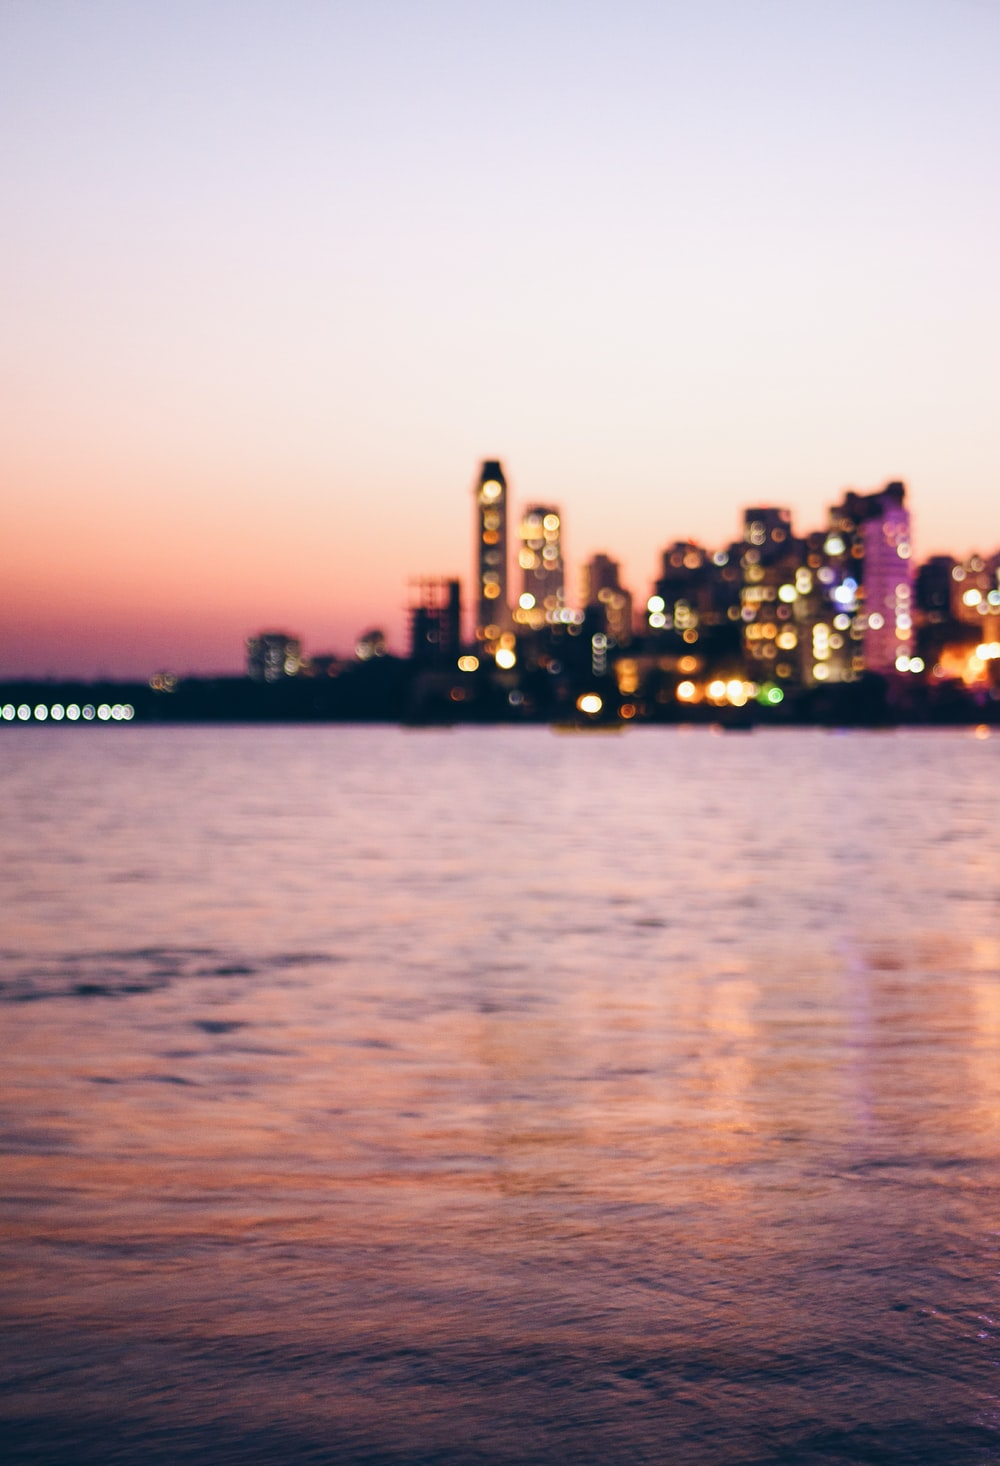 landscape photography of lighted buildings beside body of water